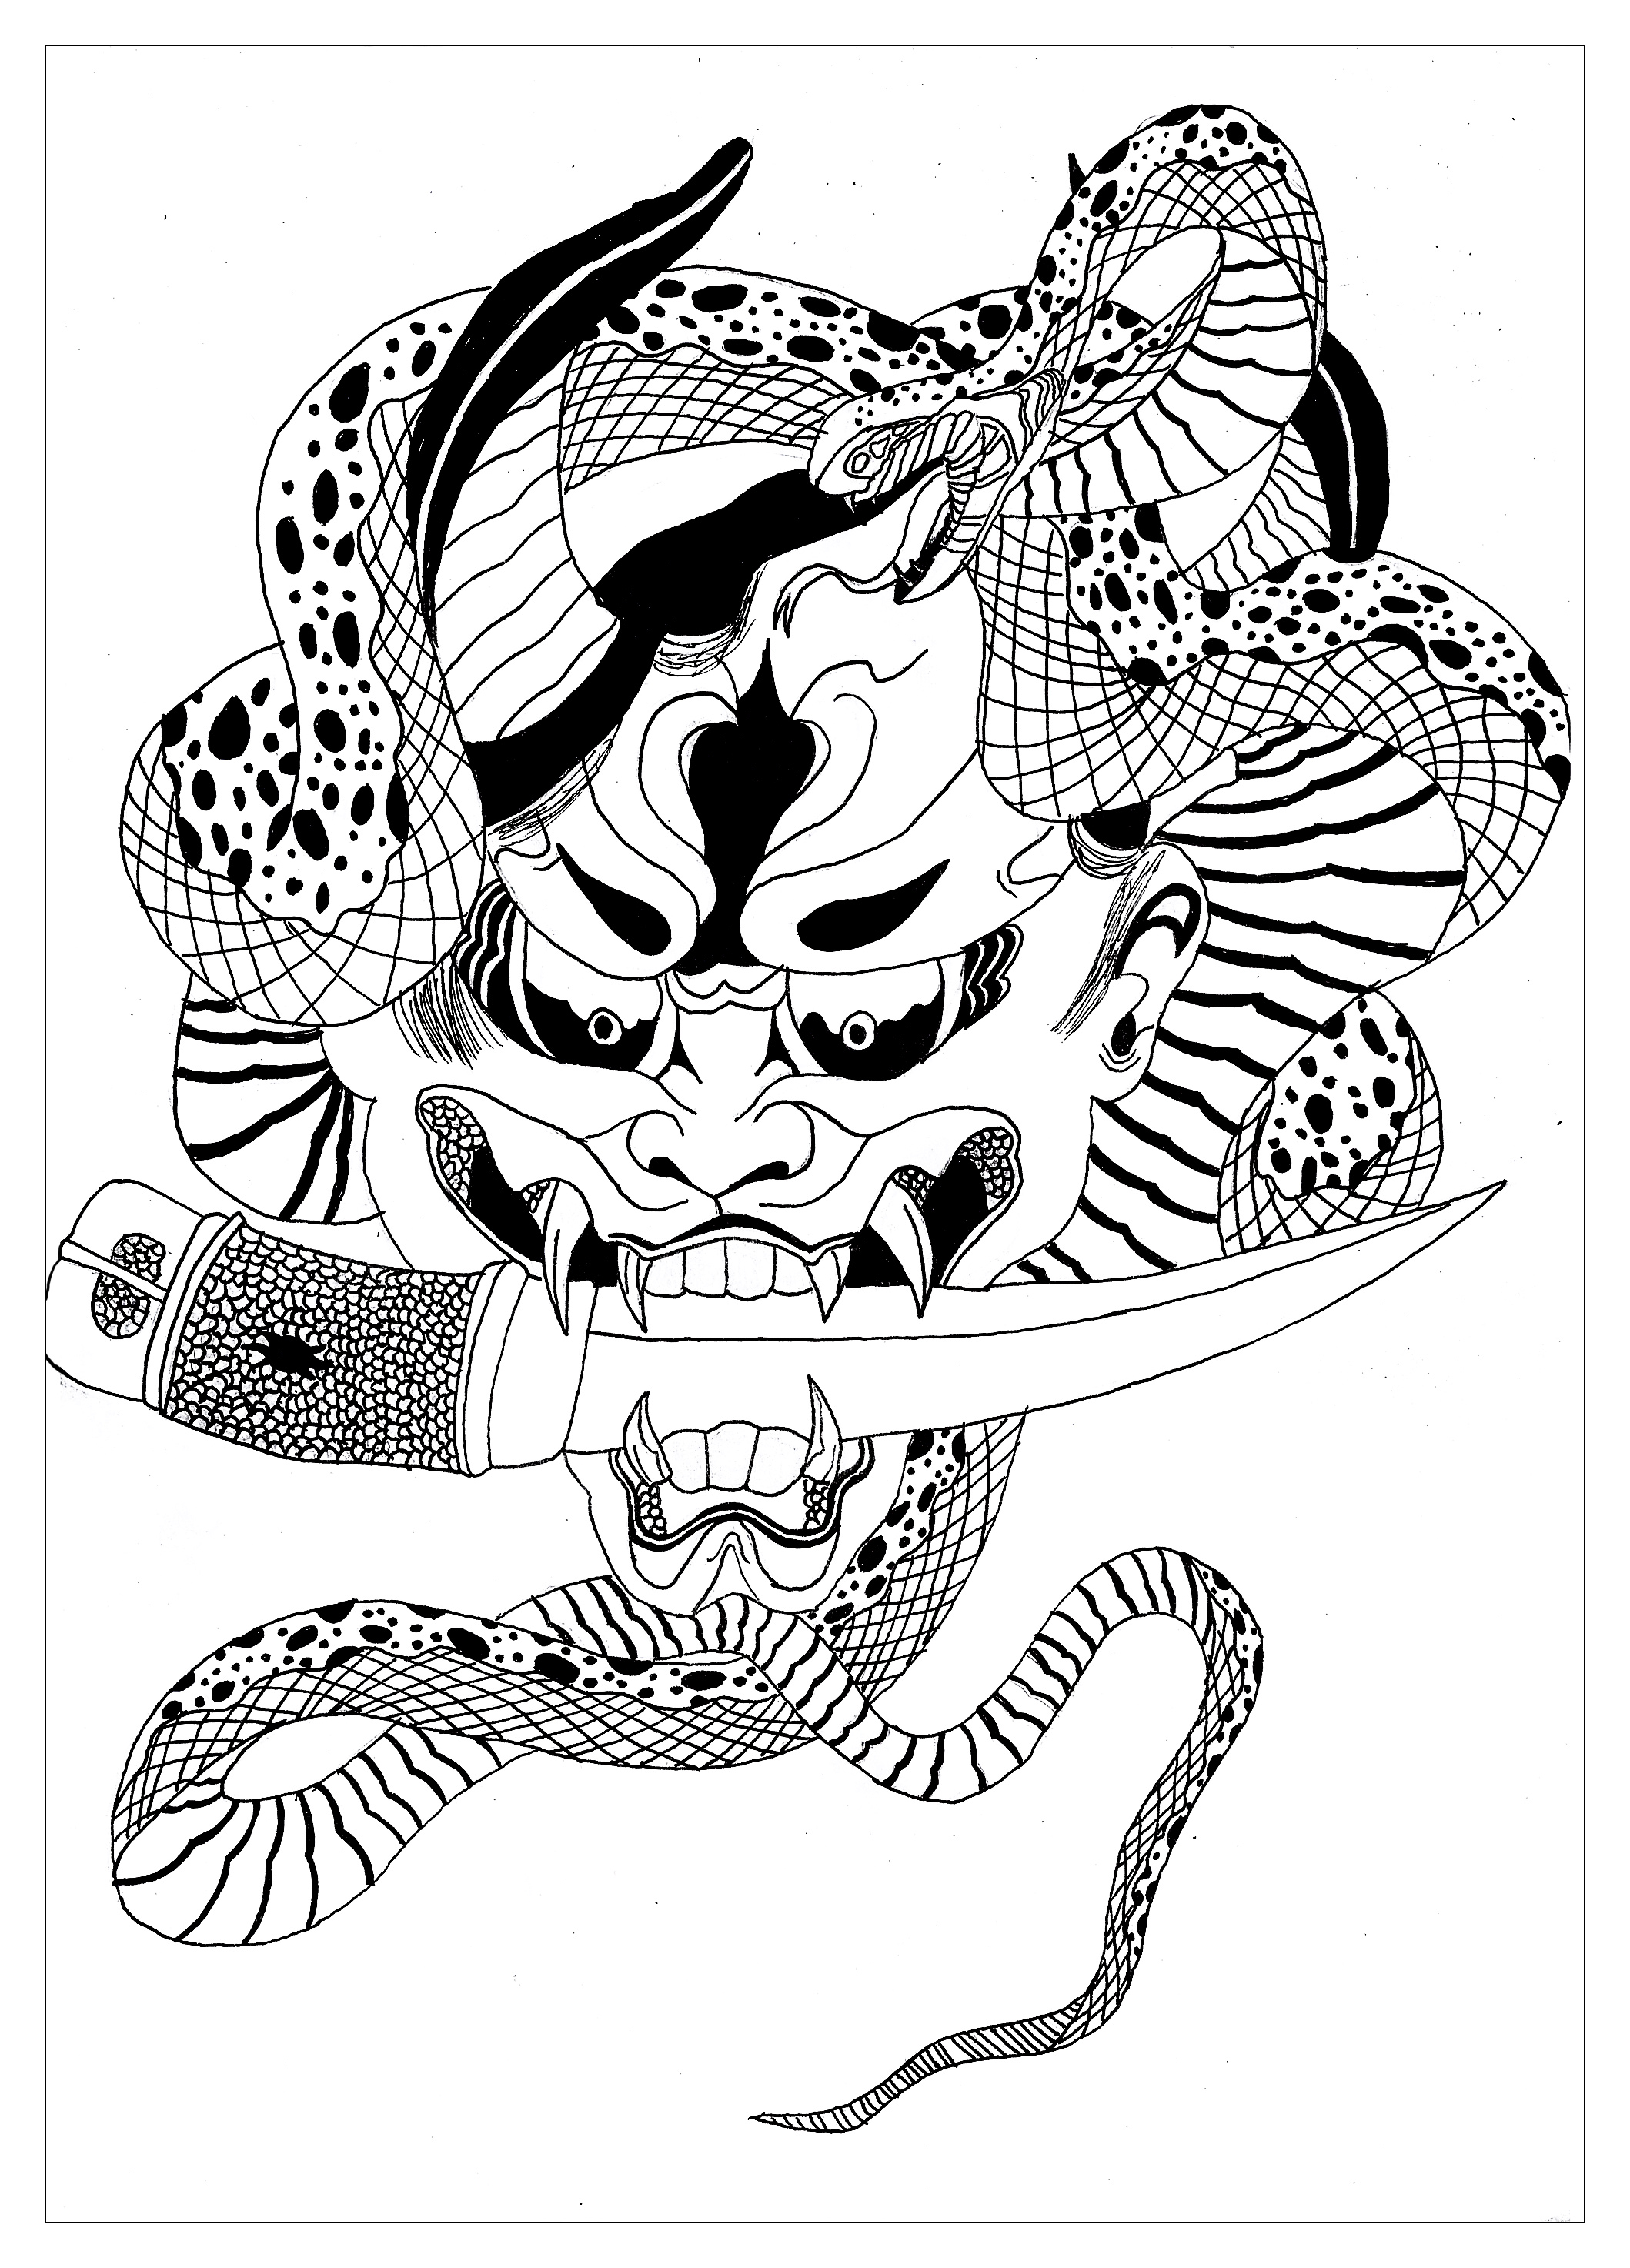 Coloring page of a Japanese Hannya mask.